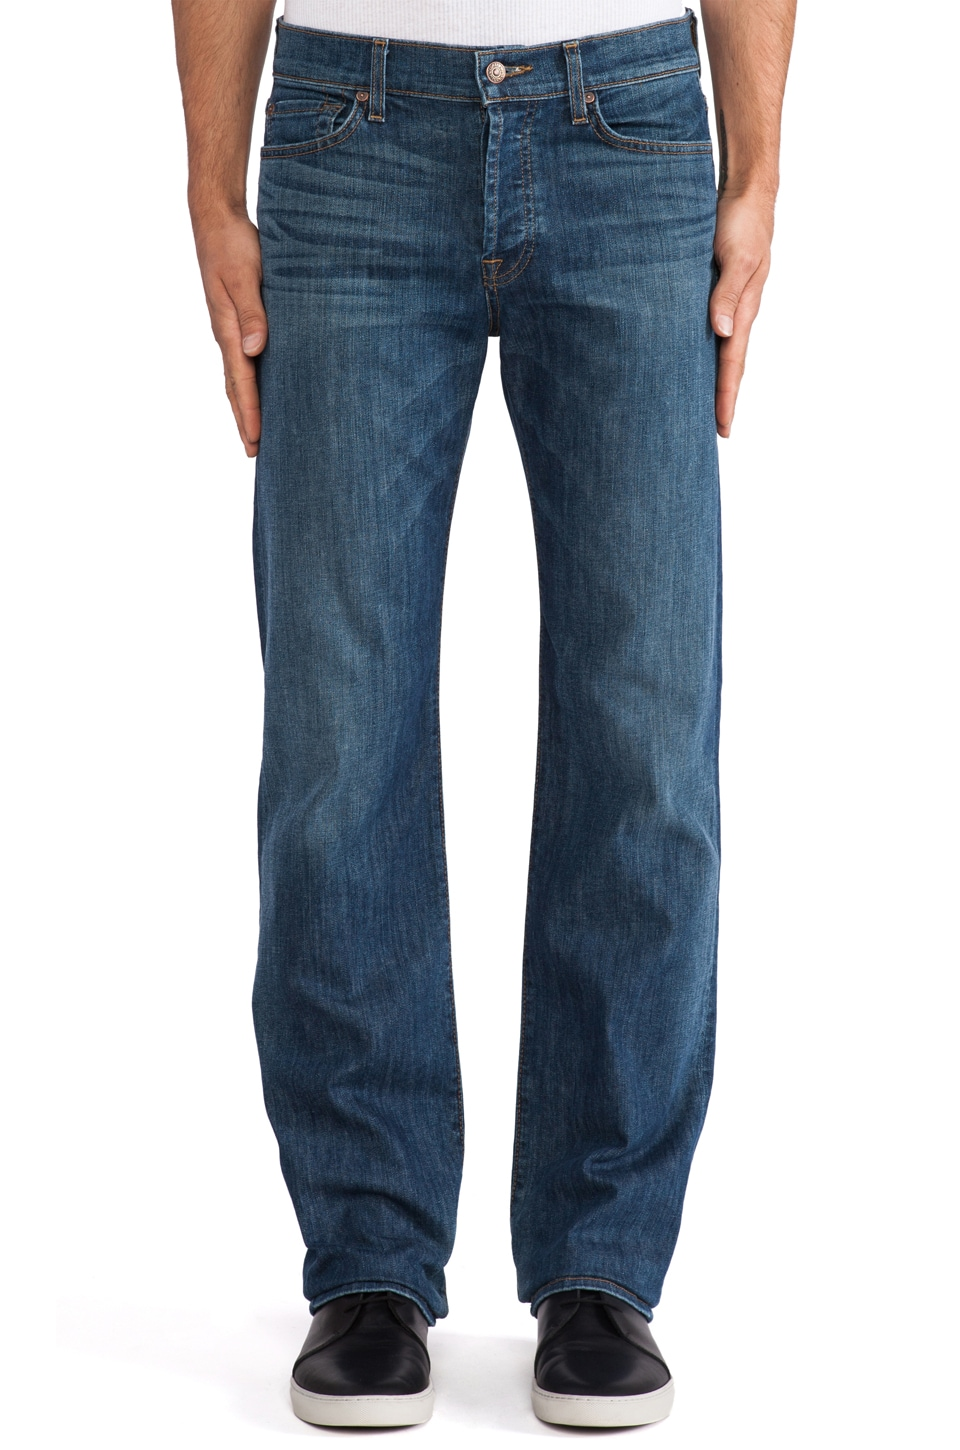 7 For All Mankind Standard in Barbados Blue